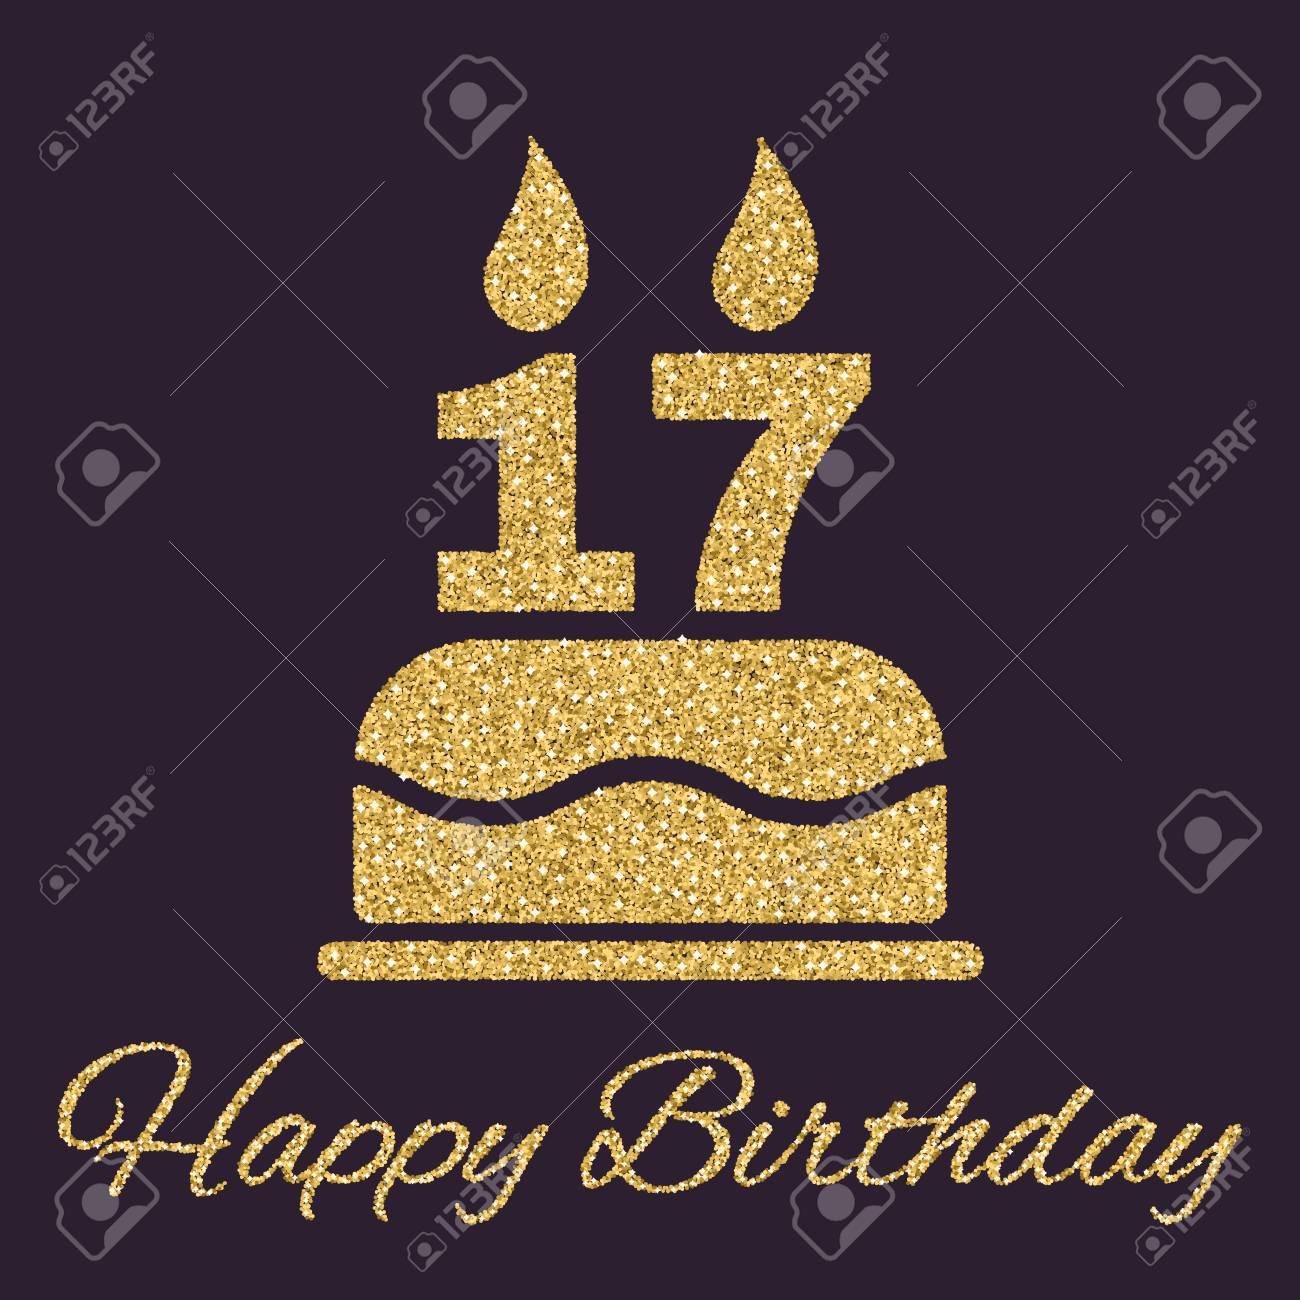 Strange The Birthday Cake With Candles In The Form Of Number 17 Icon Funny Birthday Cards Online Alyptdamsfinfo